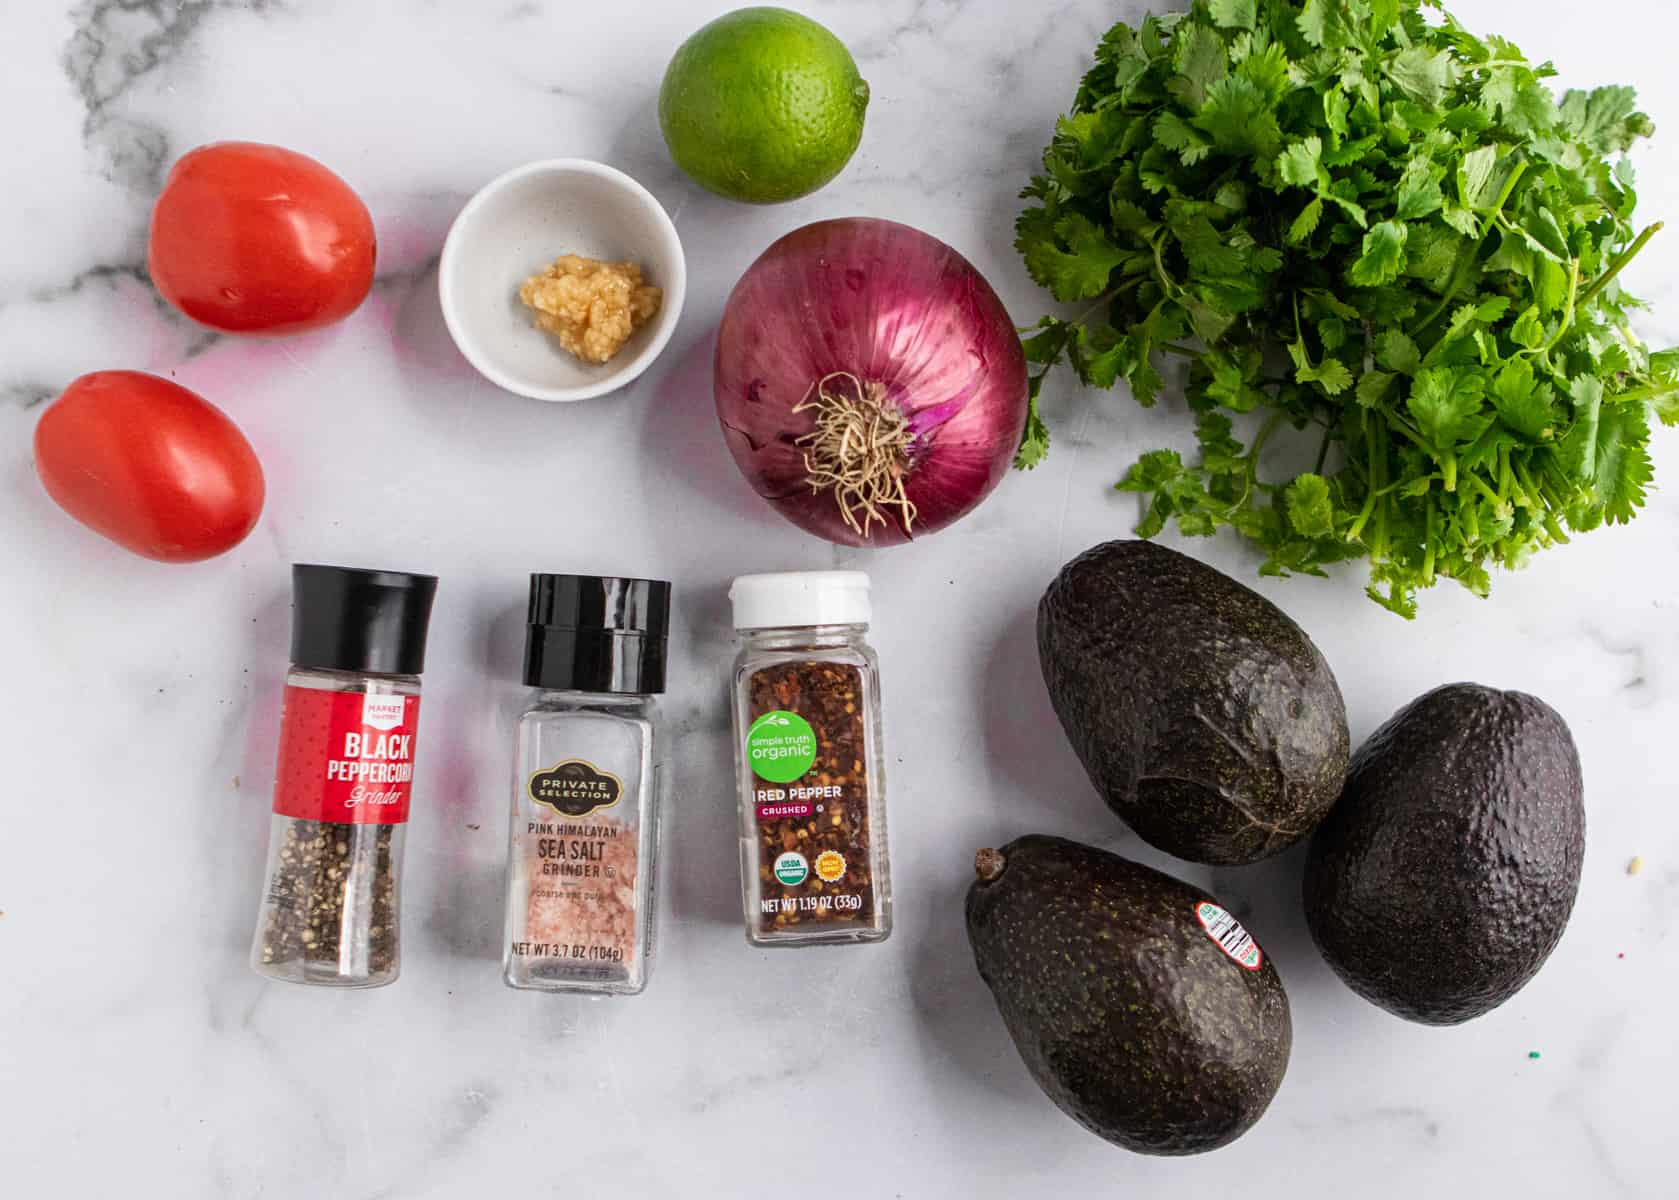 Ingredients needed to make this guacamole recipe.